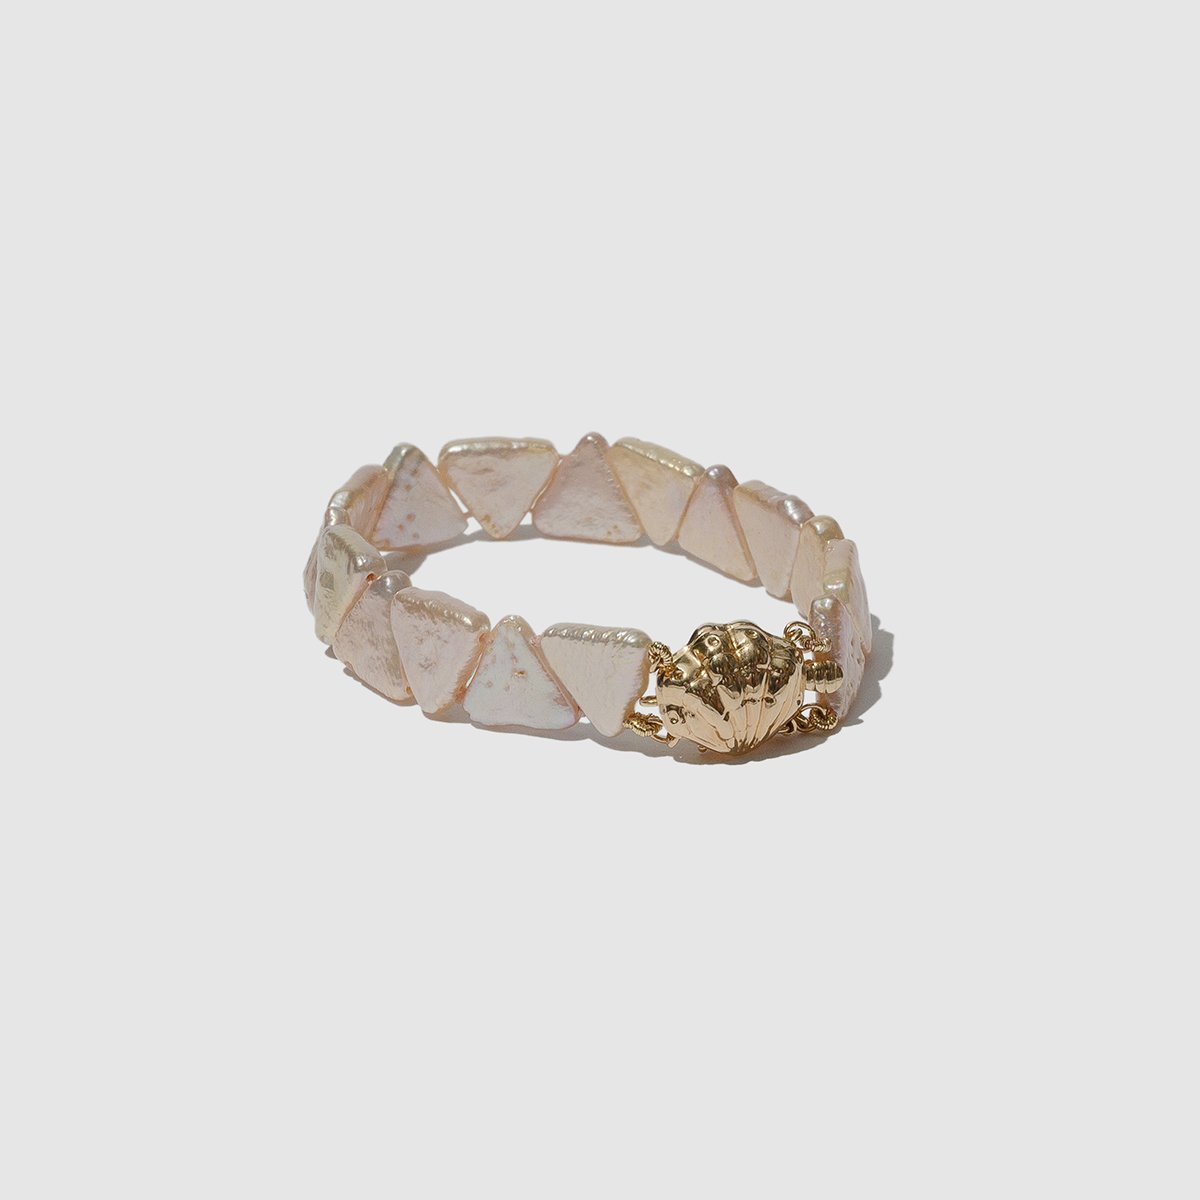 JEWELRY - PEARL PYRAMID BRACELET WITH SHELL CLASP